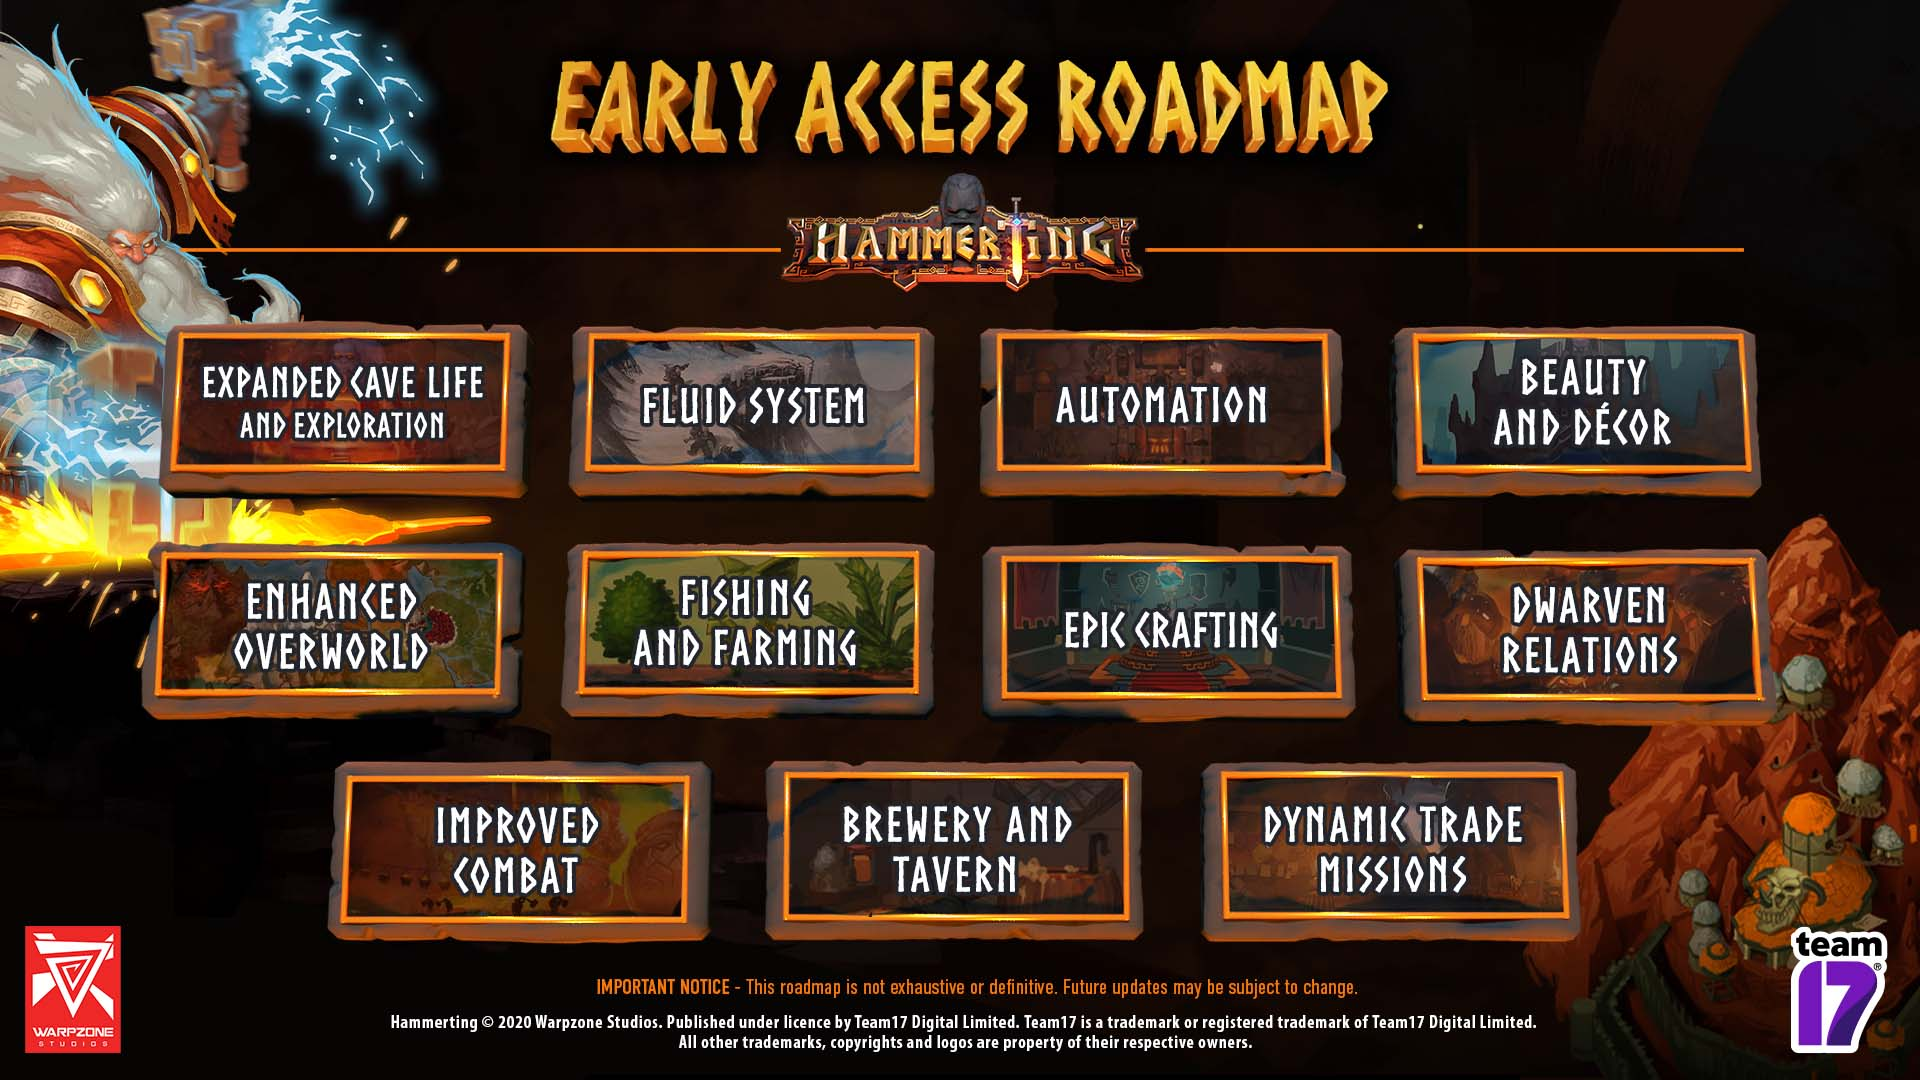 The Early Access Roadmap